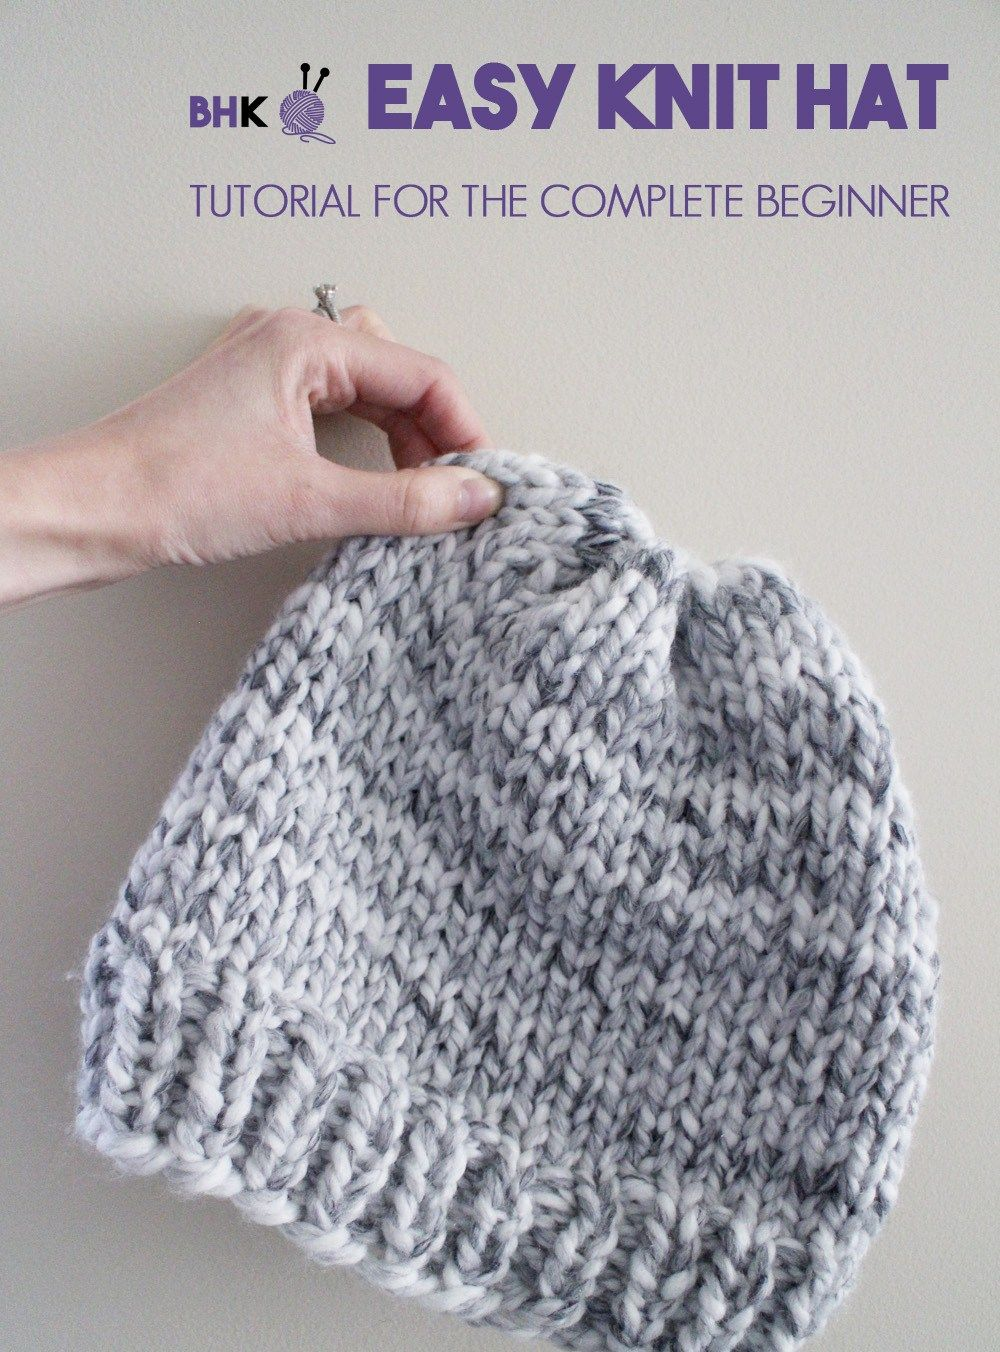 easy knit hat using circular needles - video included on site 376866e0968